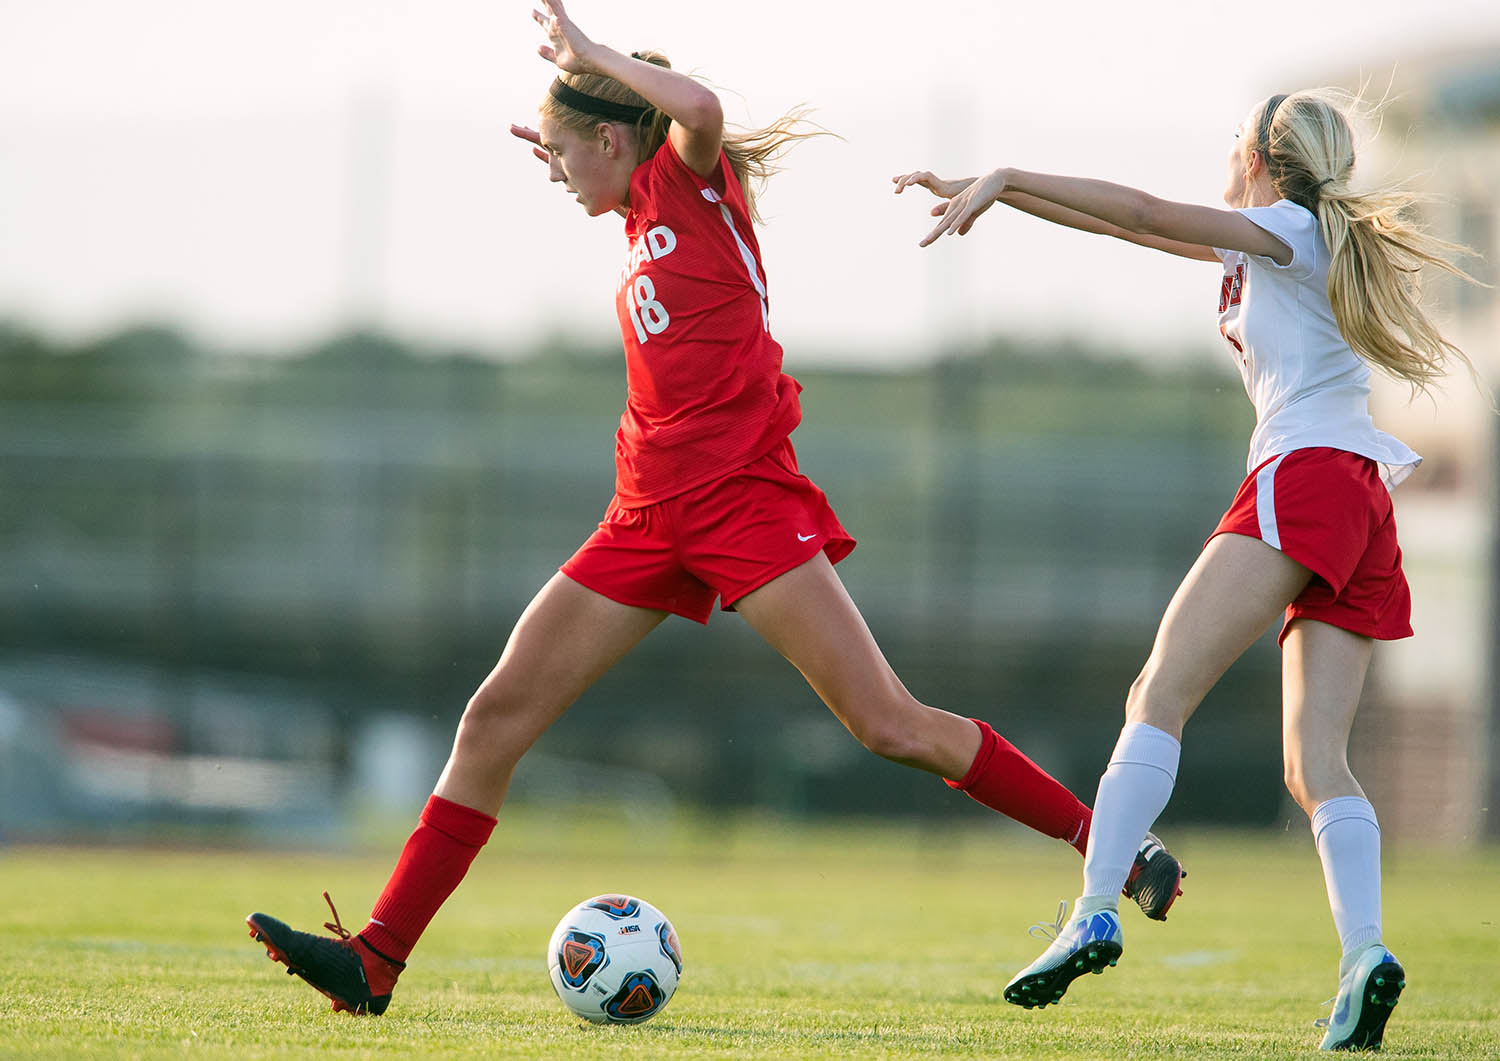 Springfield's Morgan Gill pushes off Troy Triad's Avery Bohnenstiehl after contact was made during play during the 2A Glenwood Supersectional at Glenwood High School Tuesday, May 28, 2019. [Ted Schurter/The State Journal-Register]